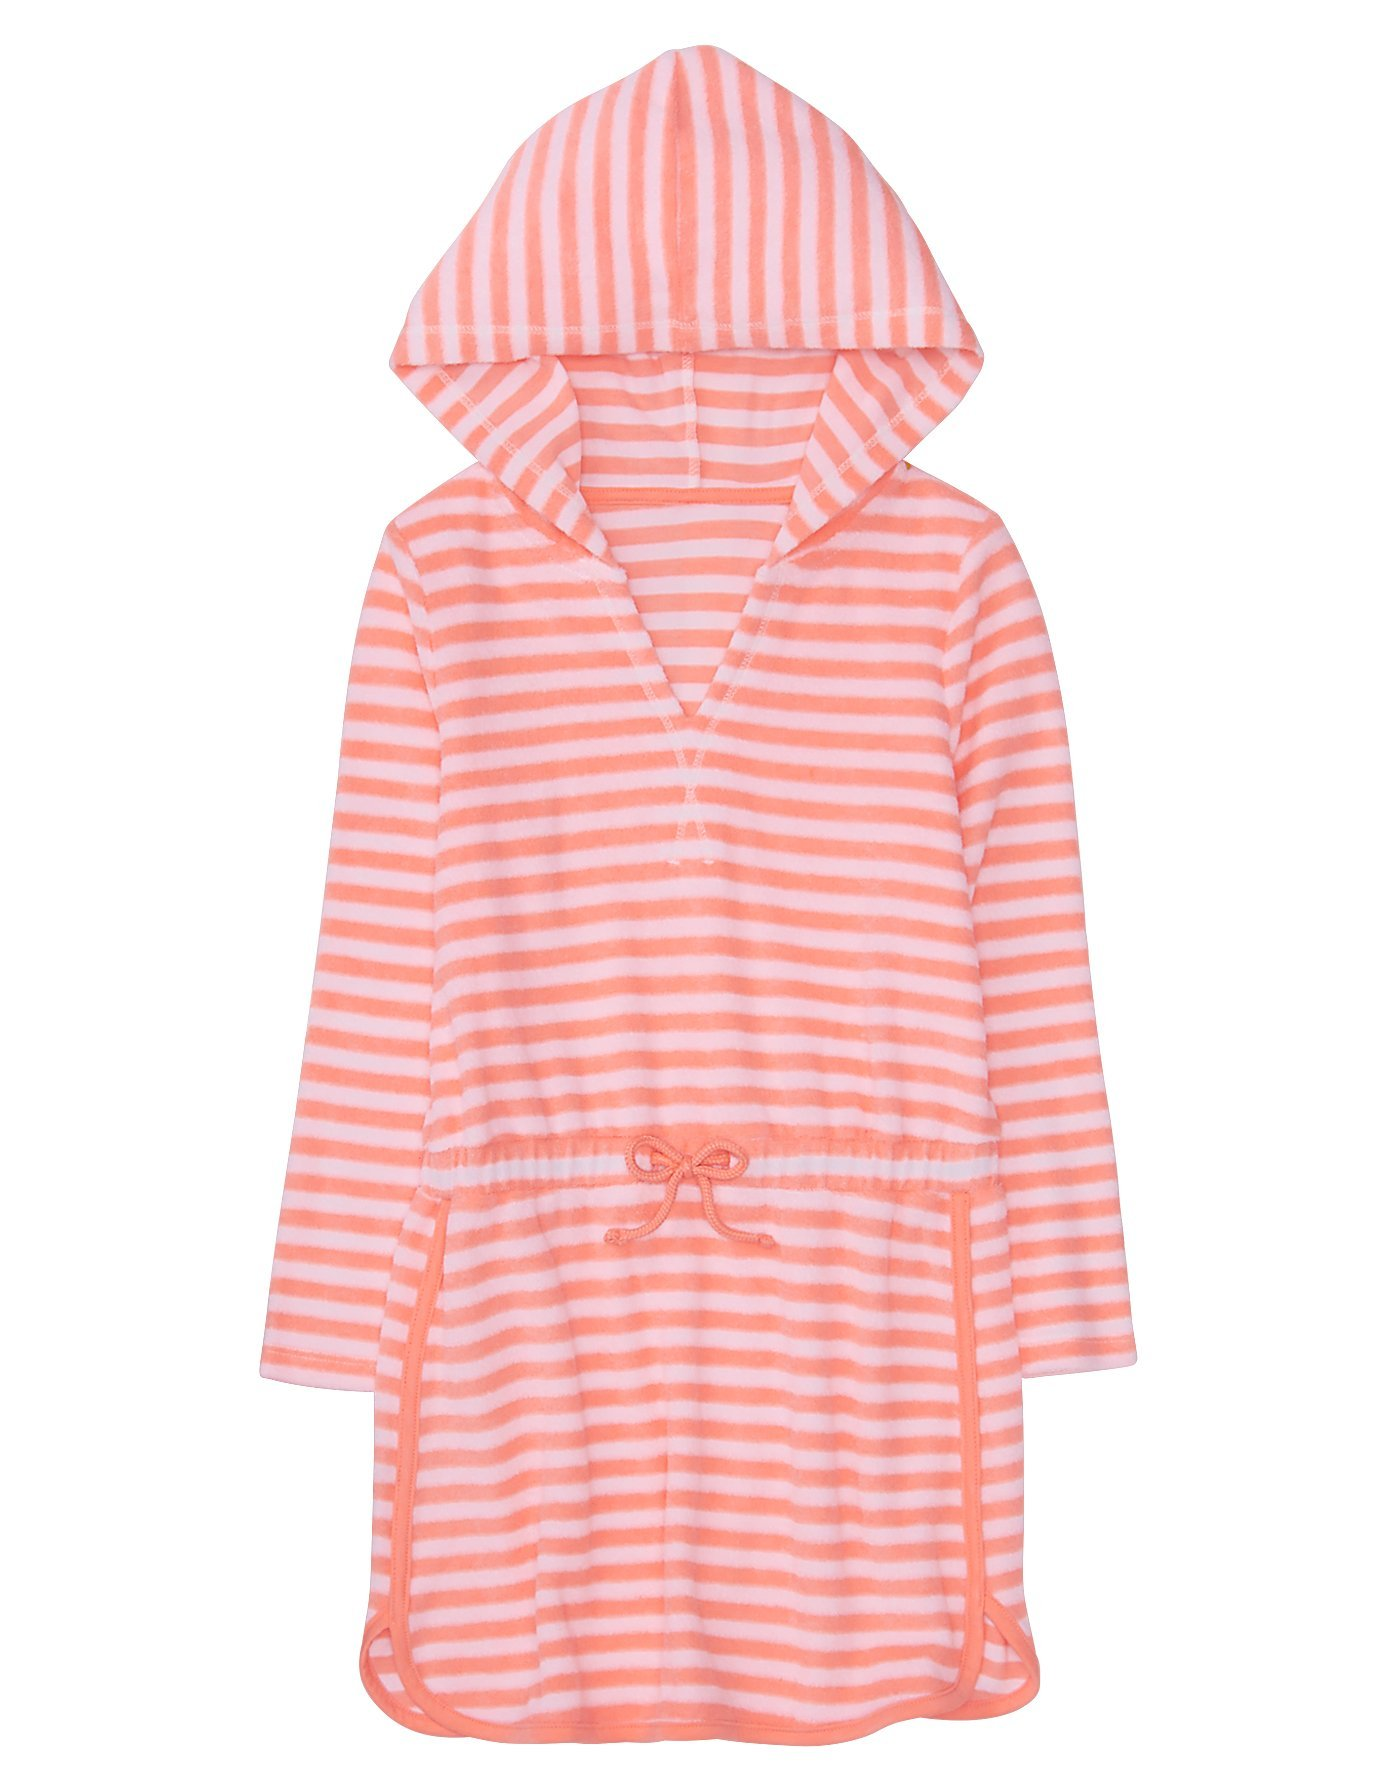 Gymboree Little Girls' Hooded Striped Cover-up, Bright Coral Stripe, S